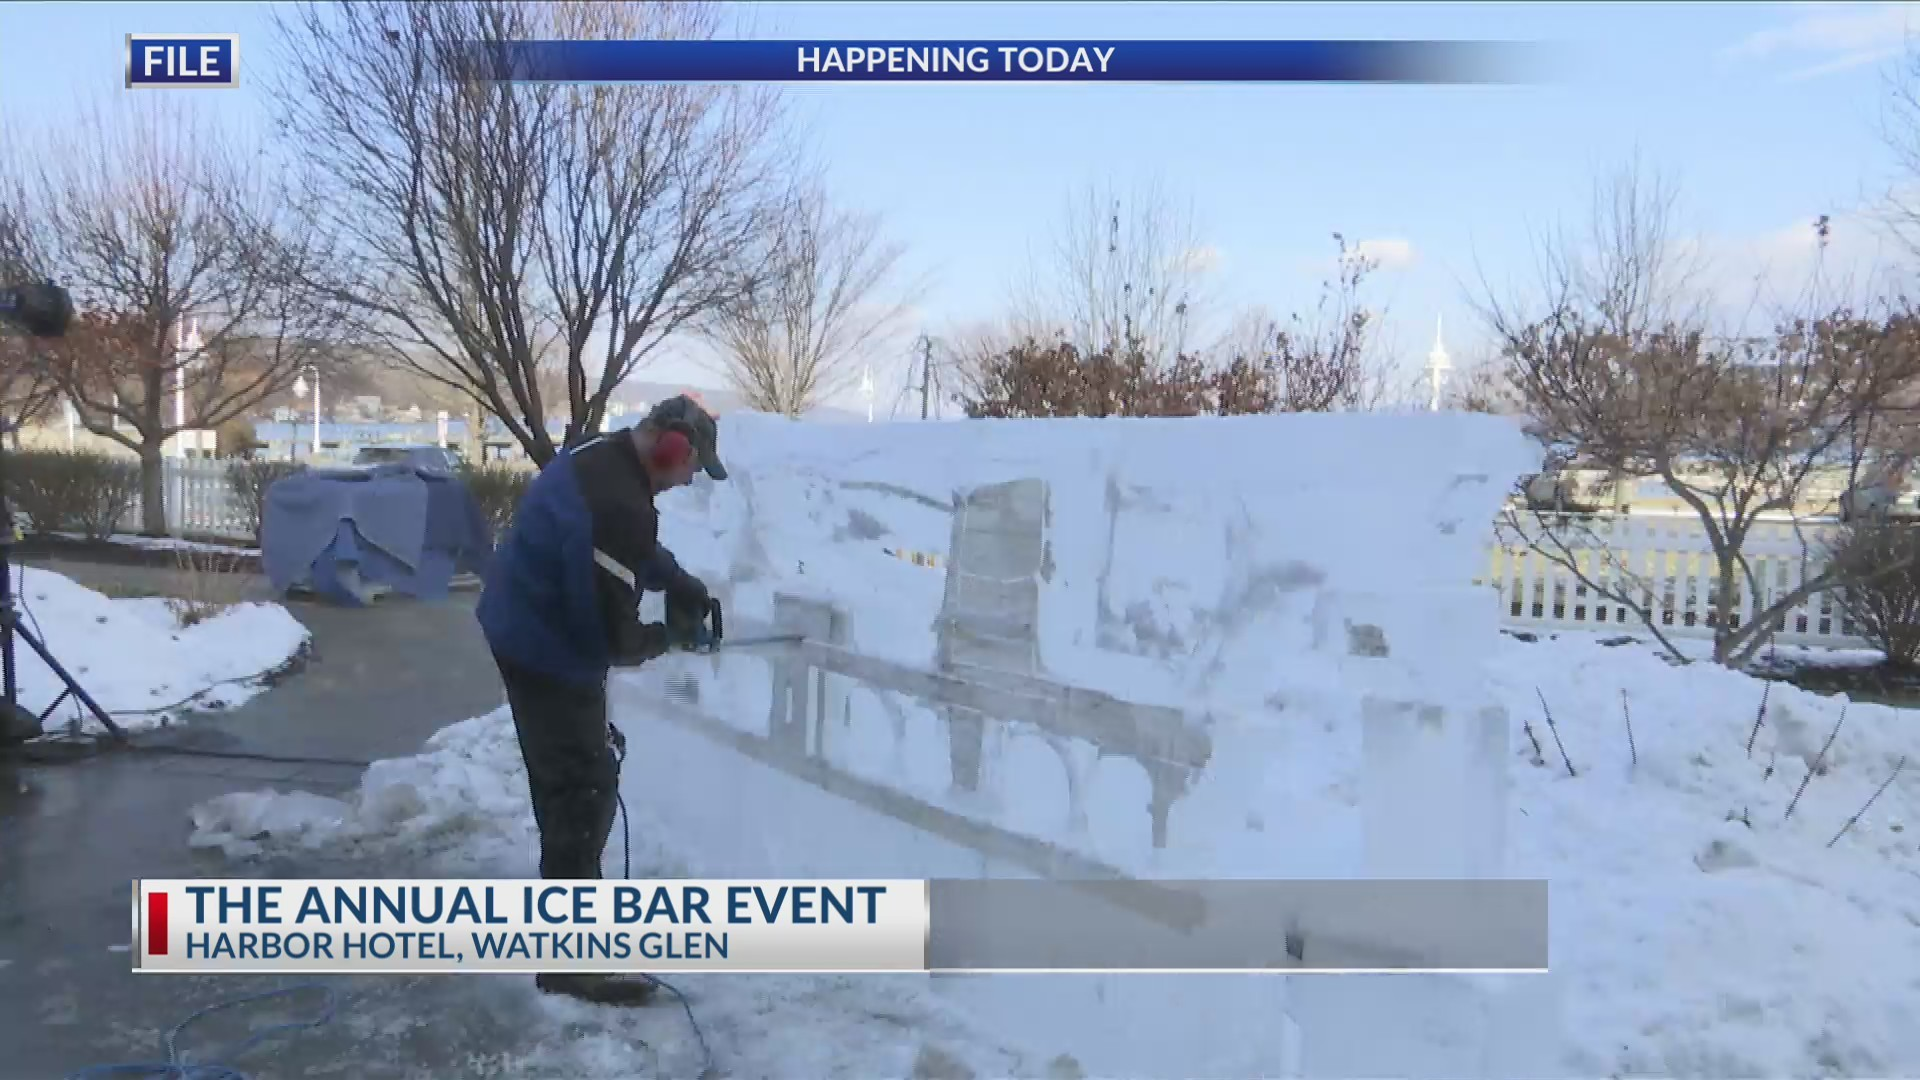 Ice_Bar_Event_0_20190131234021